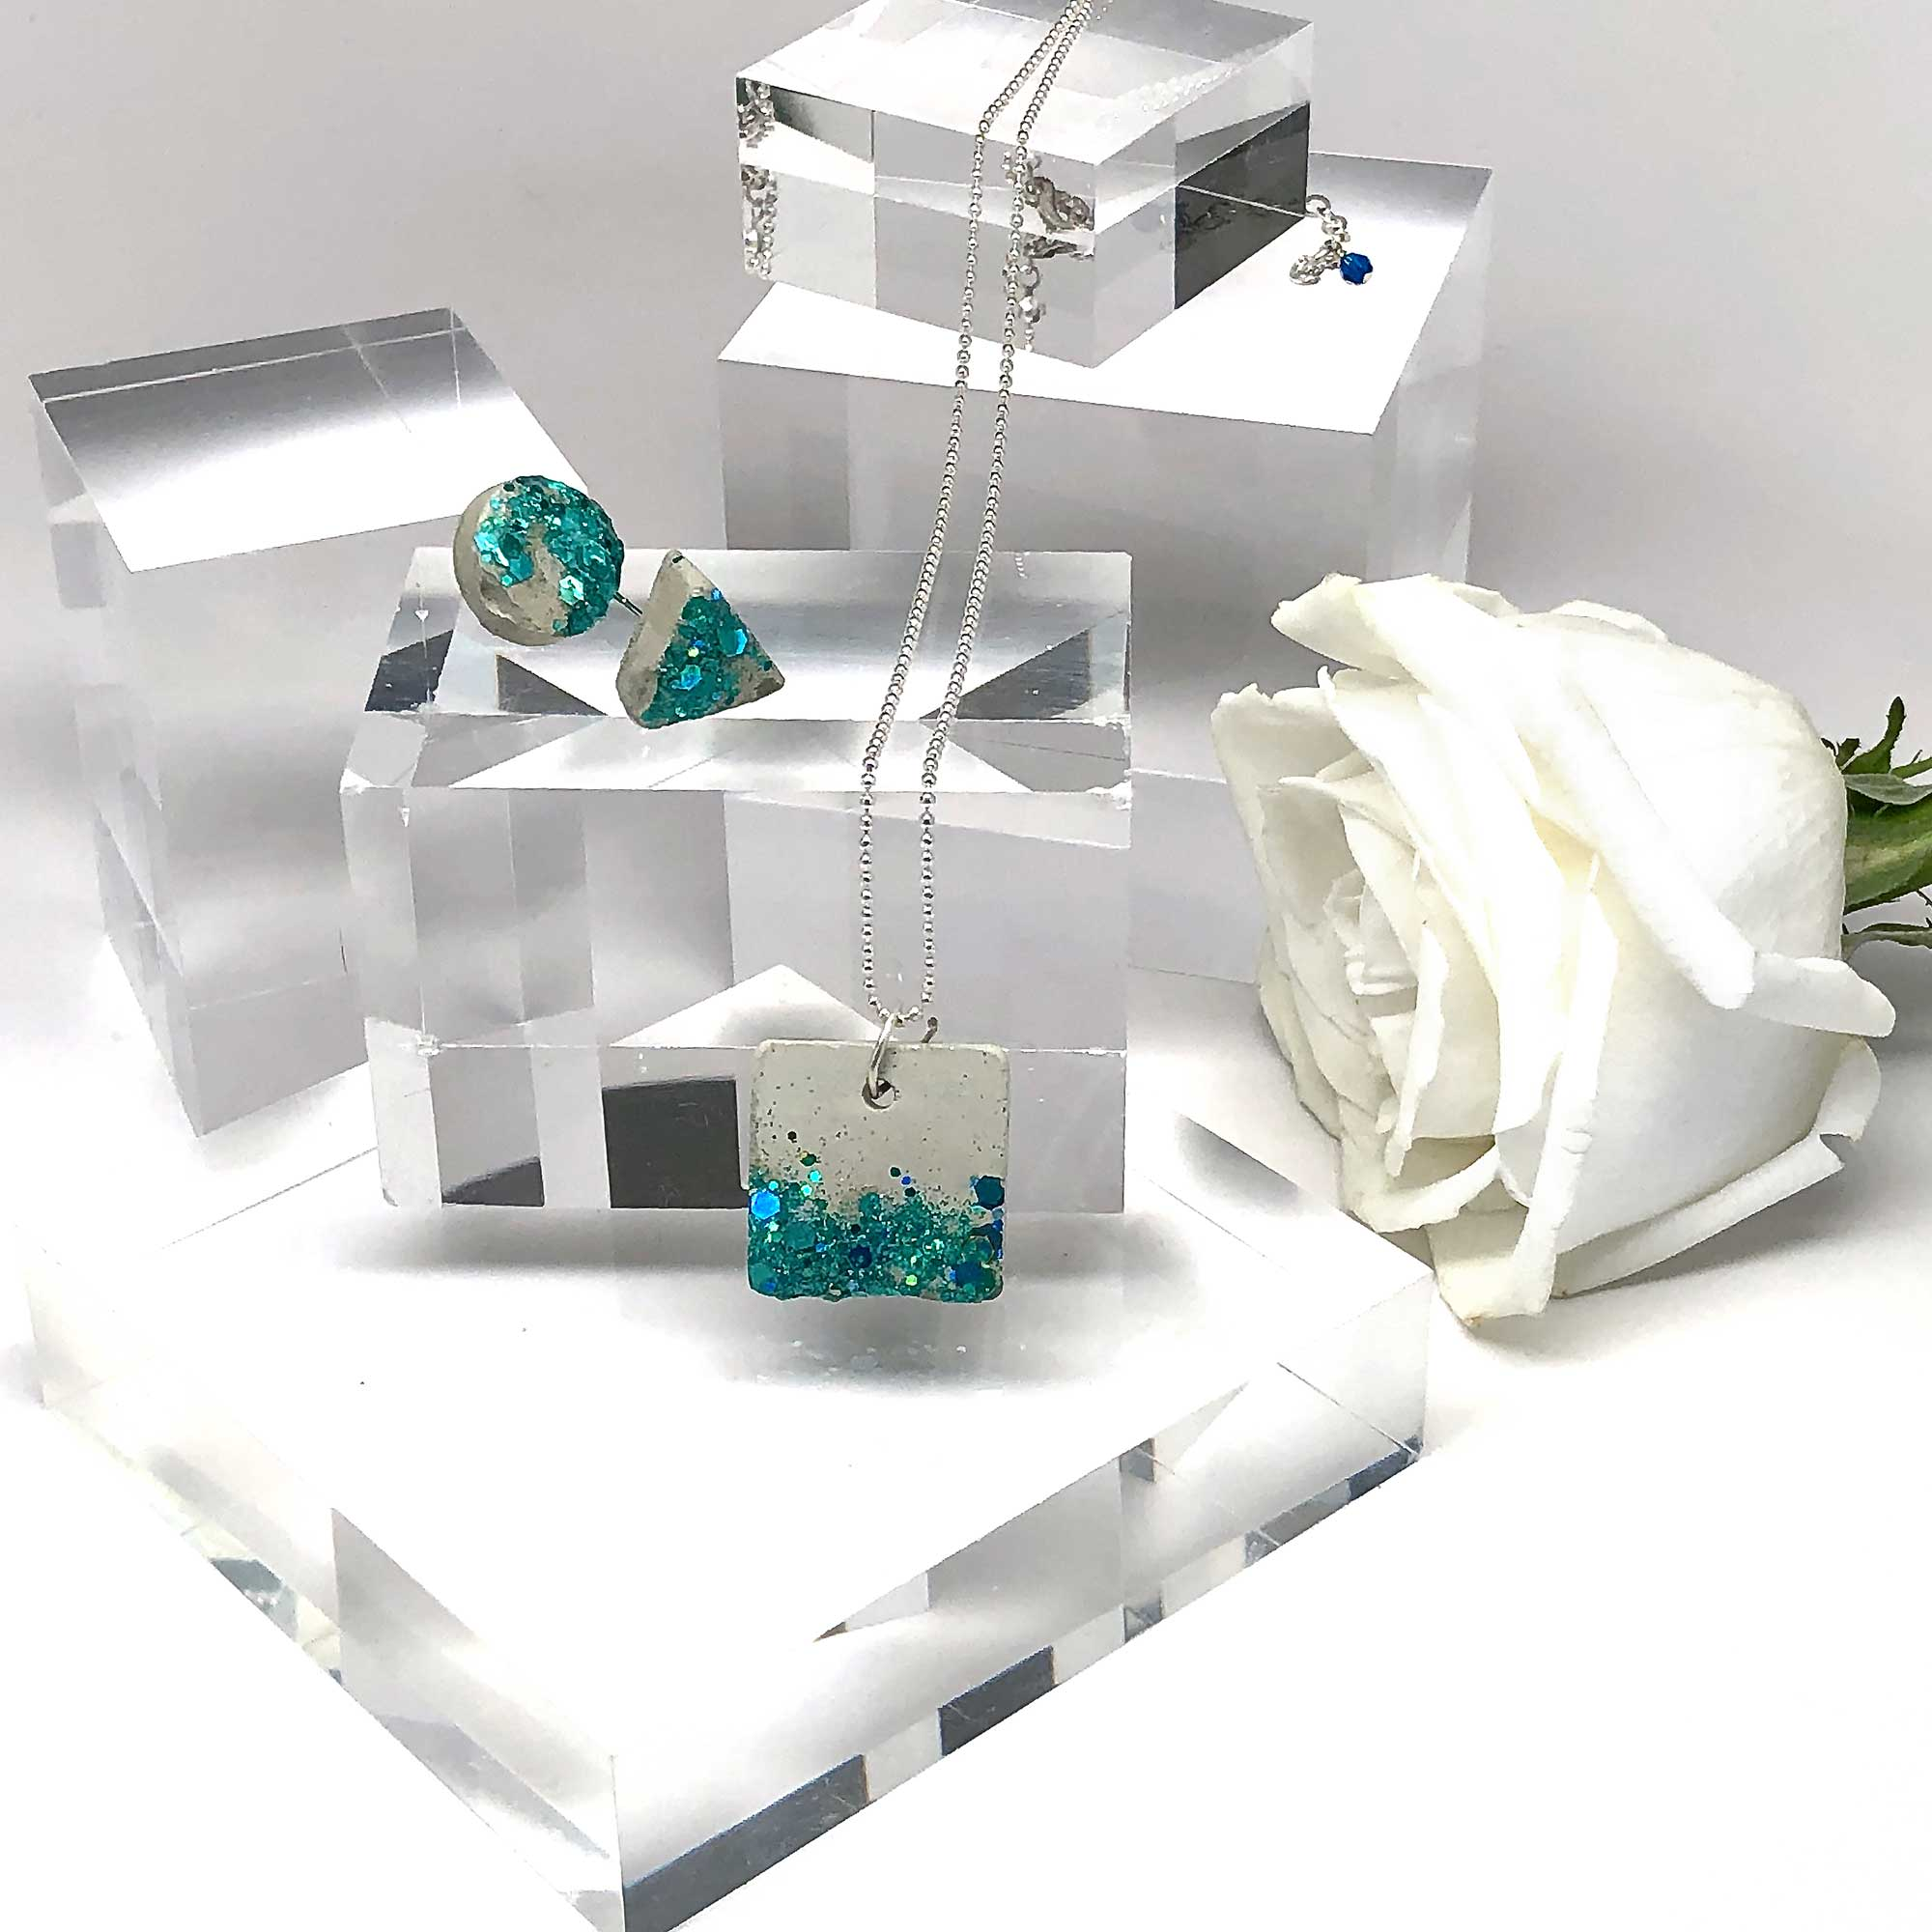 Concrete & Shimmering Aqua Necklace & Earring Set #2